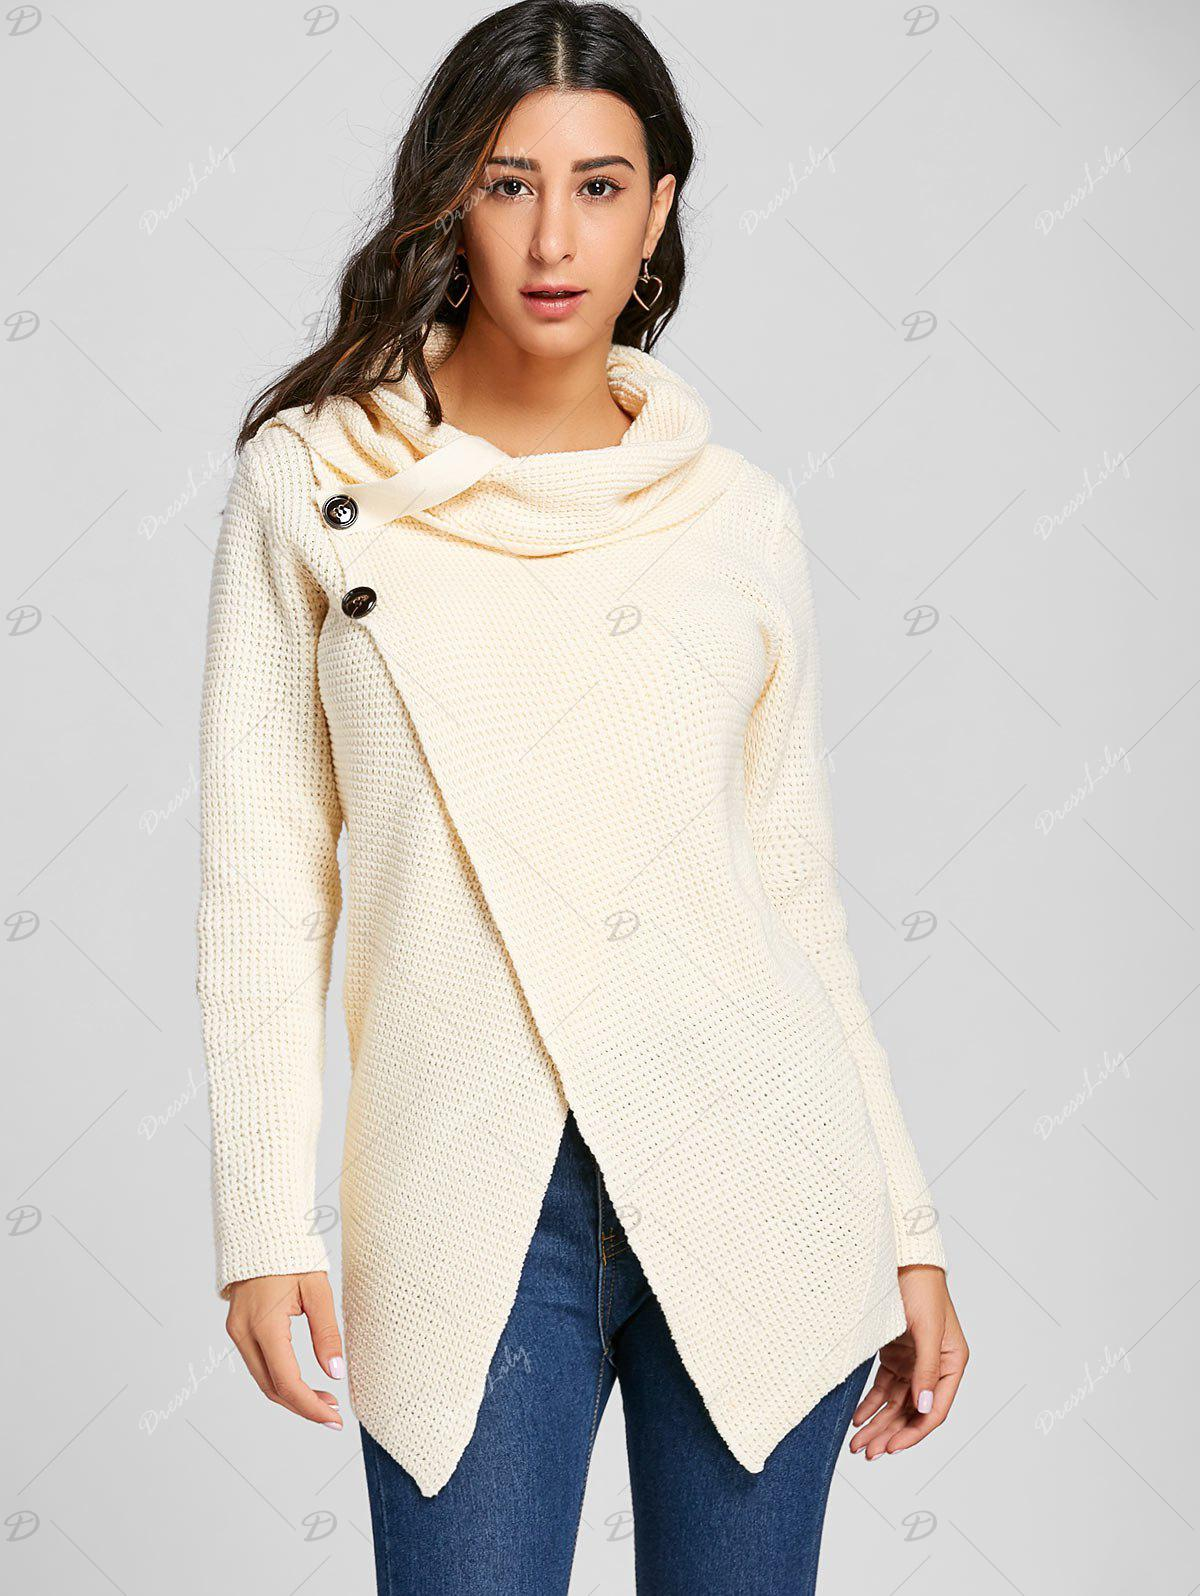 Cowl Neck Split Front Knitted Sweater - OFF WHITE S